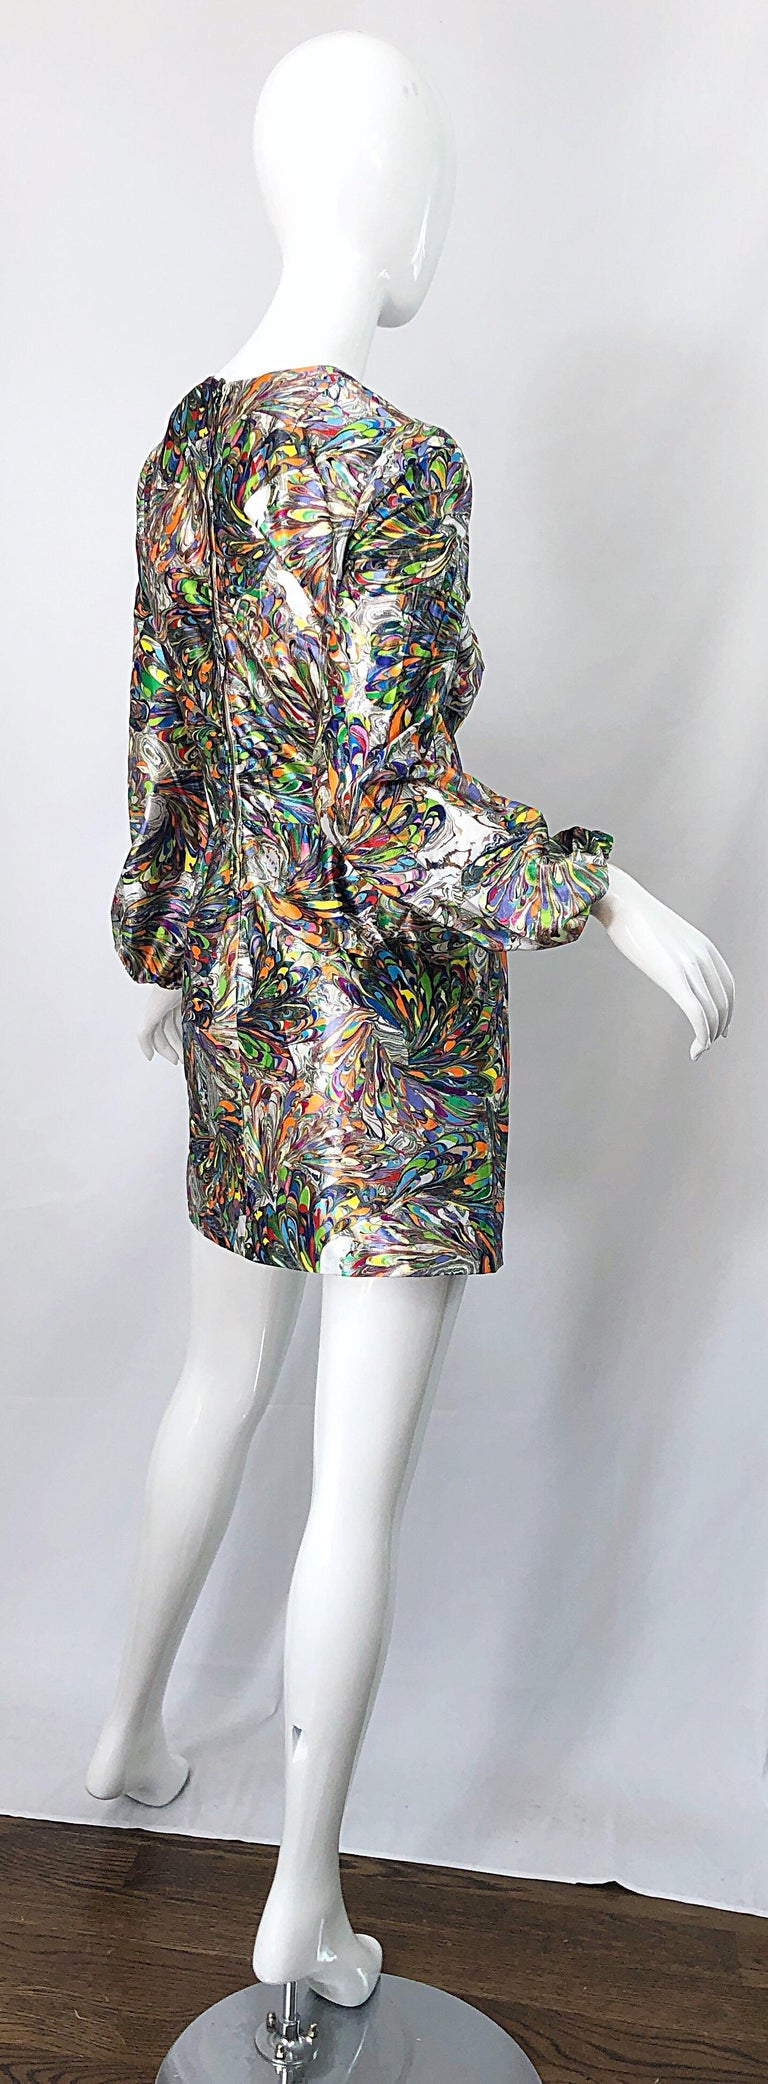 1970s Mosaic Swirl Vibrant Colored Bishop Sleeve Vintage 70s Tunic Dress For Sale 6